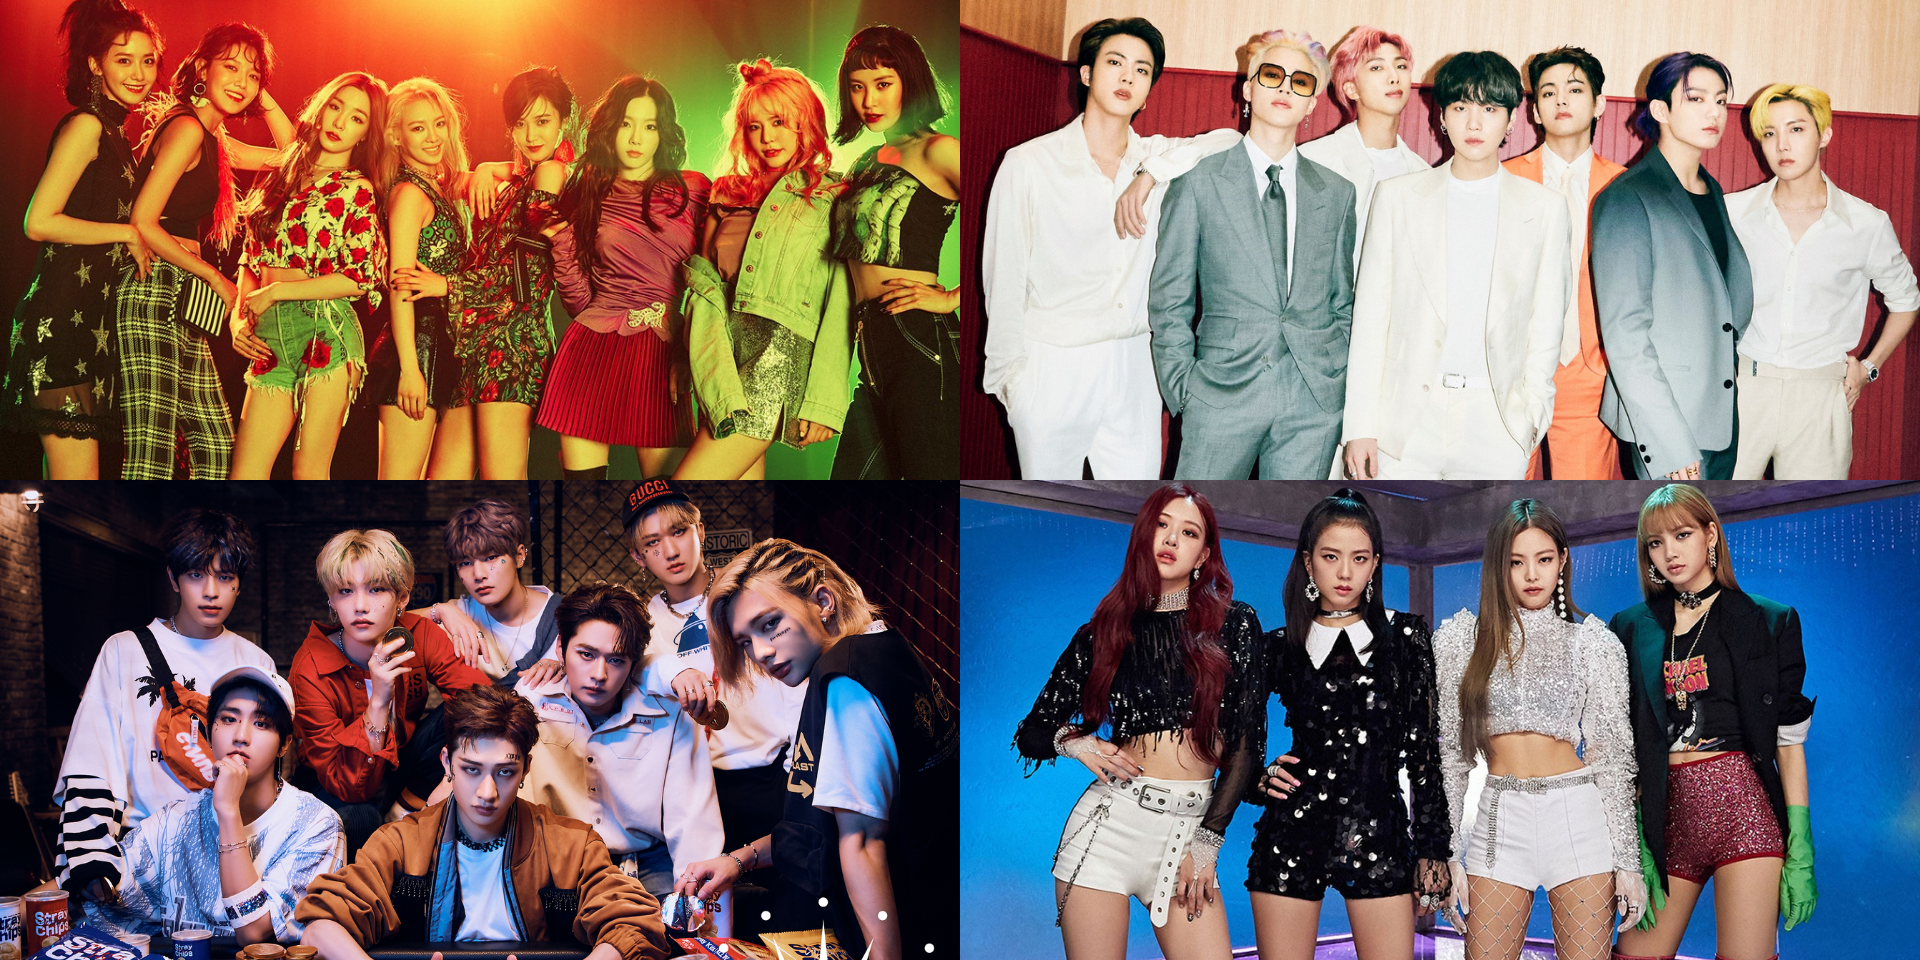 Twitter reveals that K-pop acts are Tweeting more than ever before